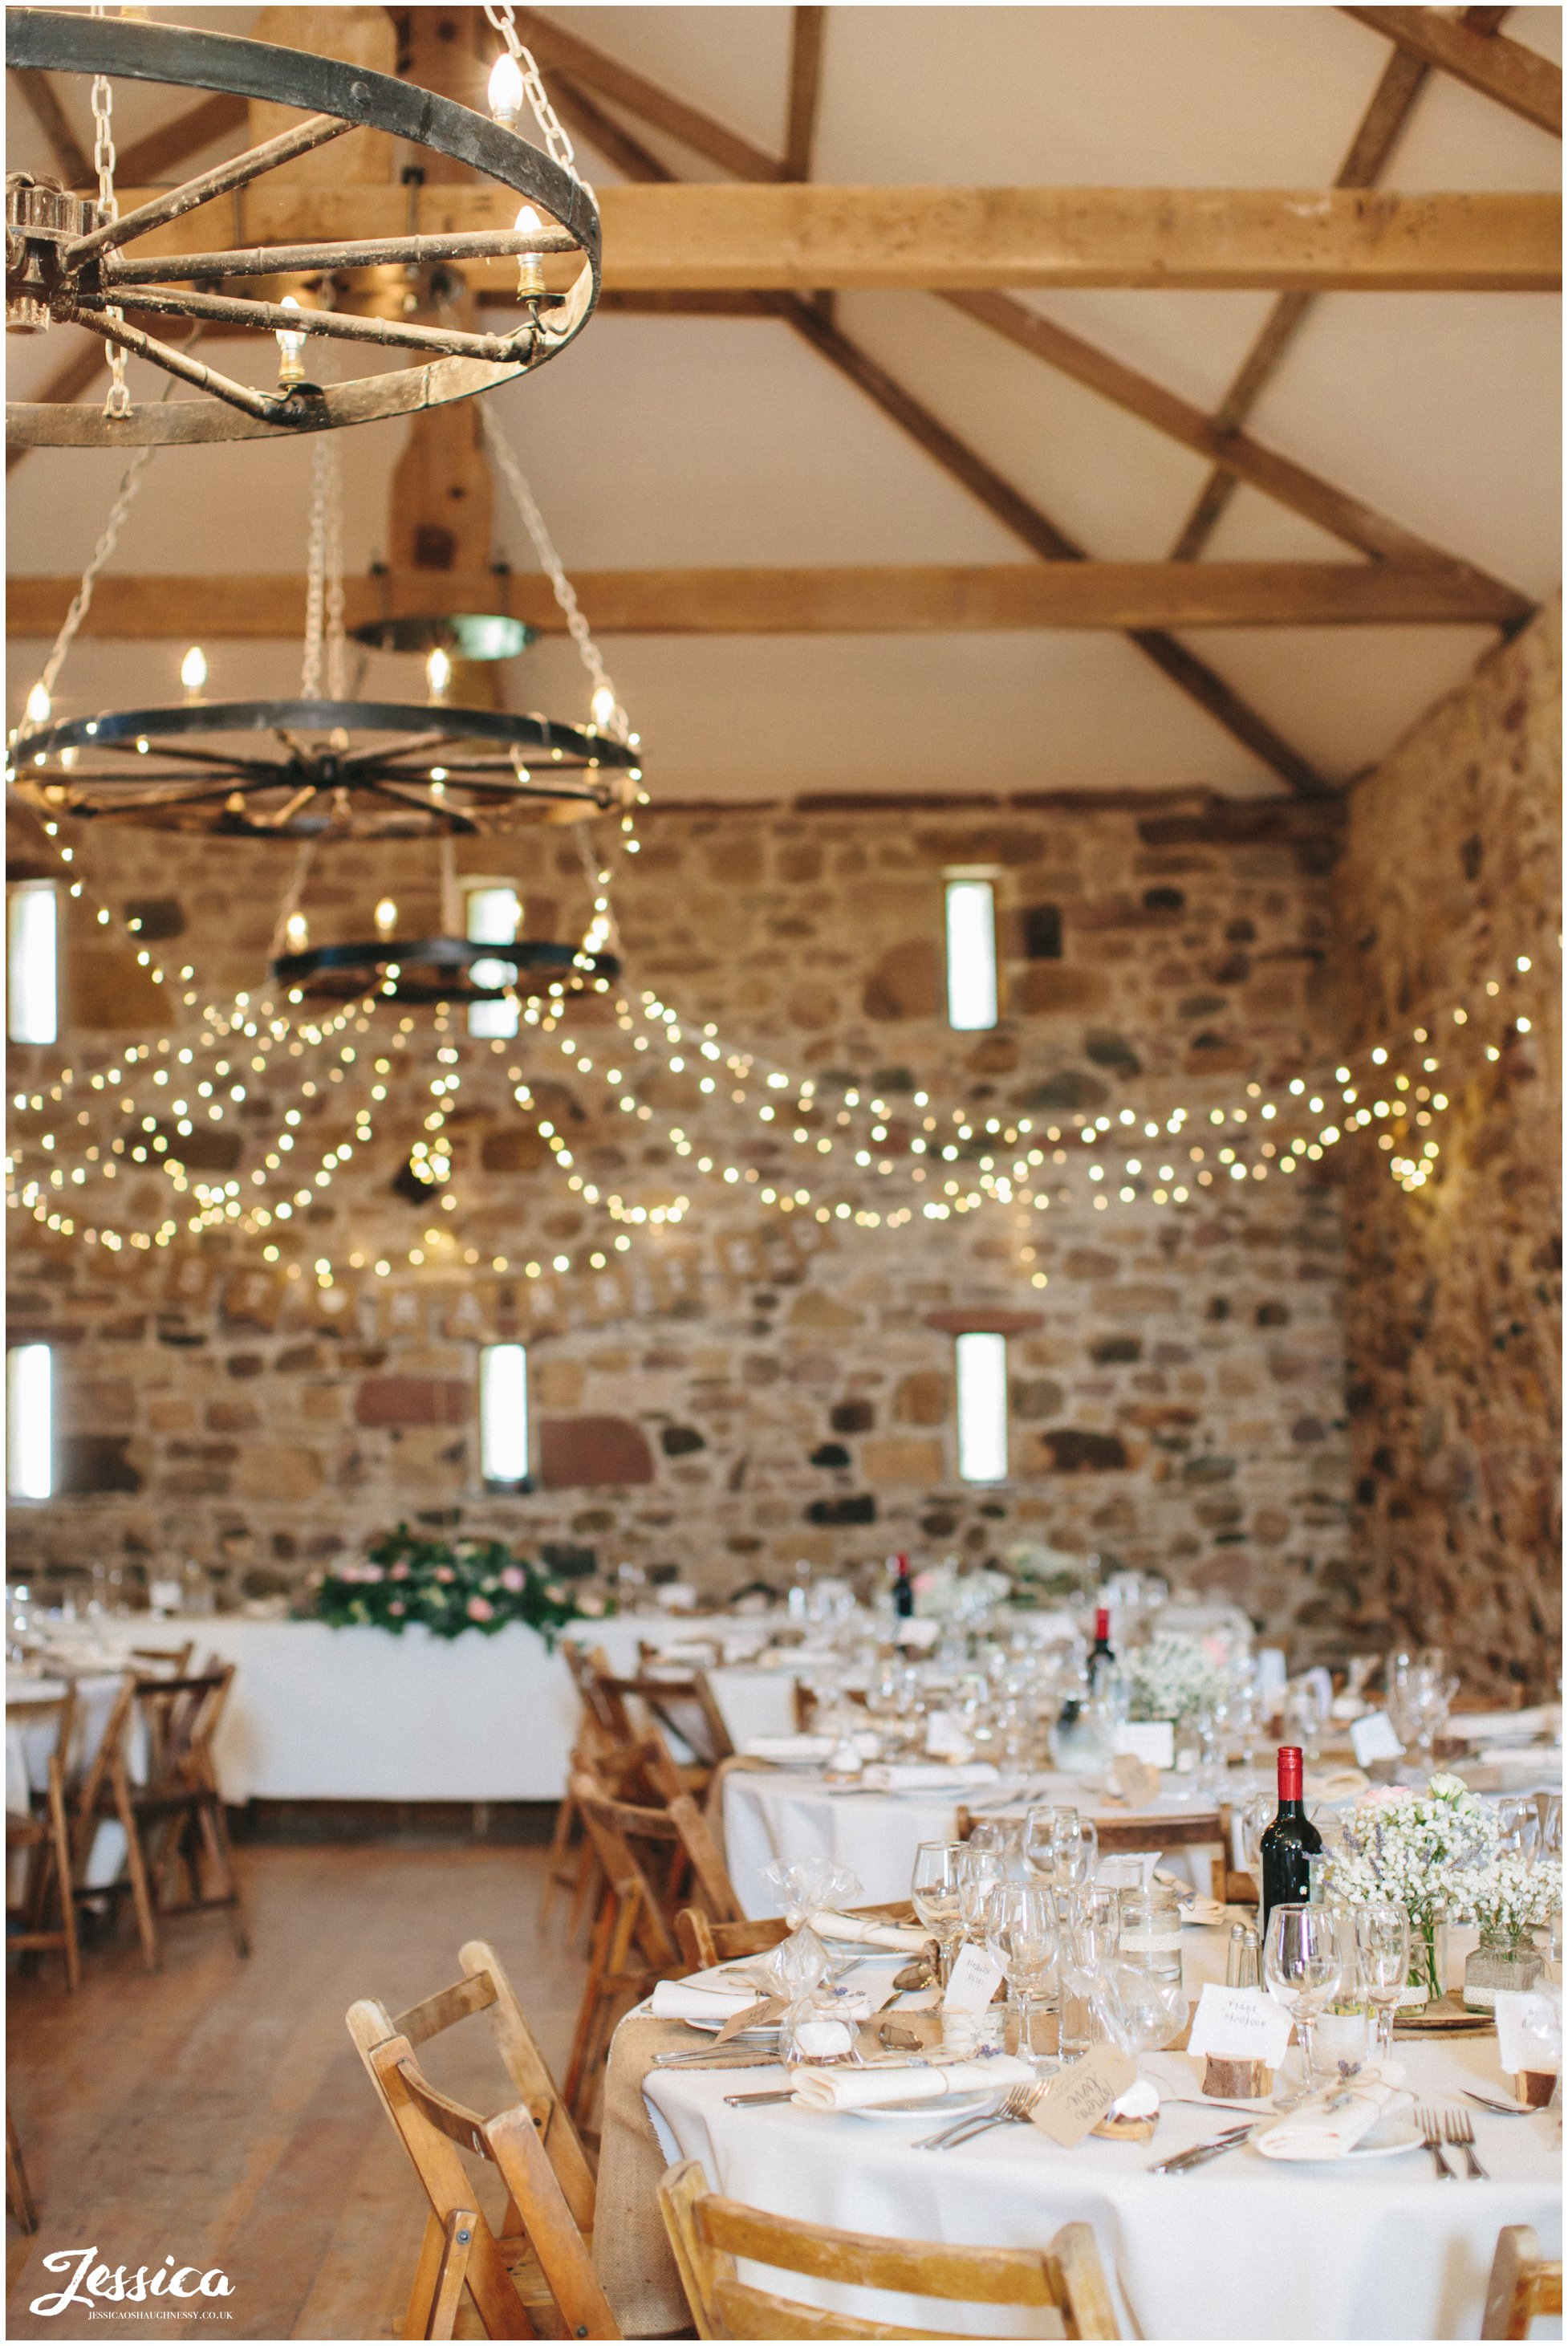 Barn dressed in rustic wedding decorations, cumbria wedding photographer